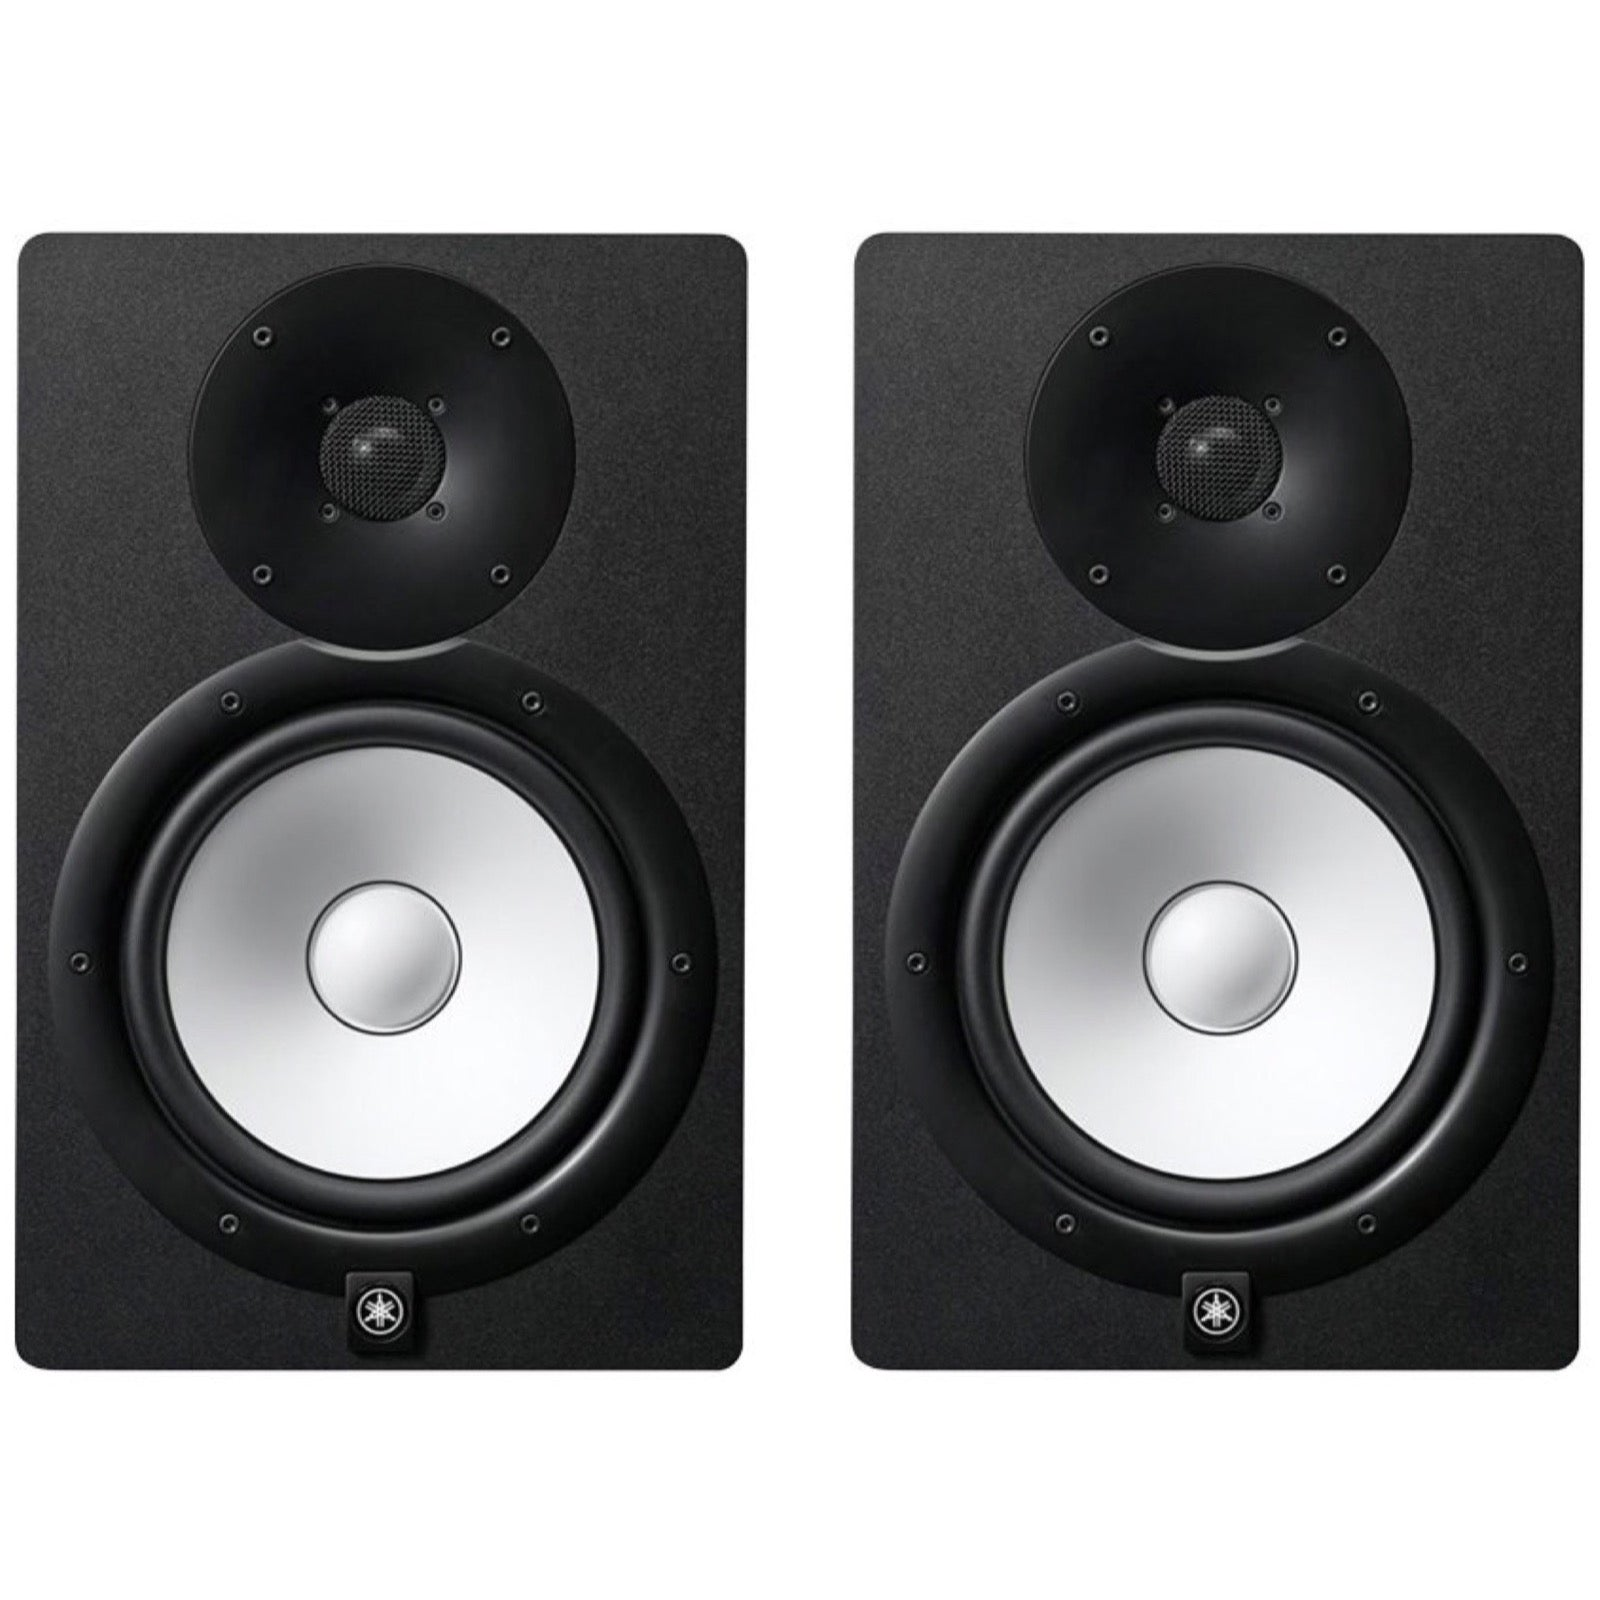 Yamaha HS8 Active Studio Monitor, Black, Pair, with Yamaha HS8S Powered Studio Subwoofer